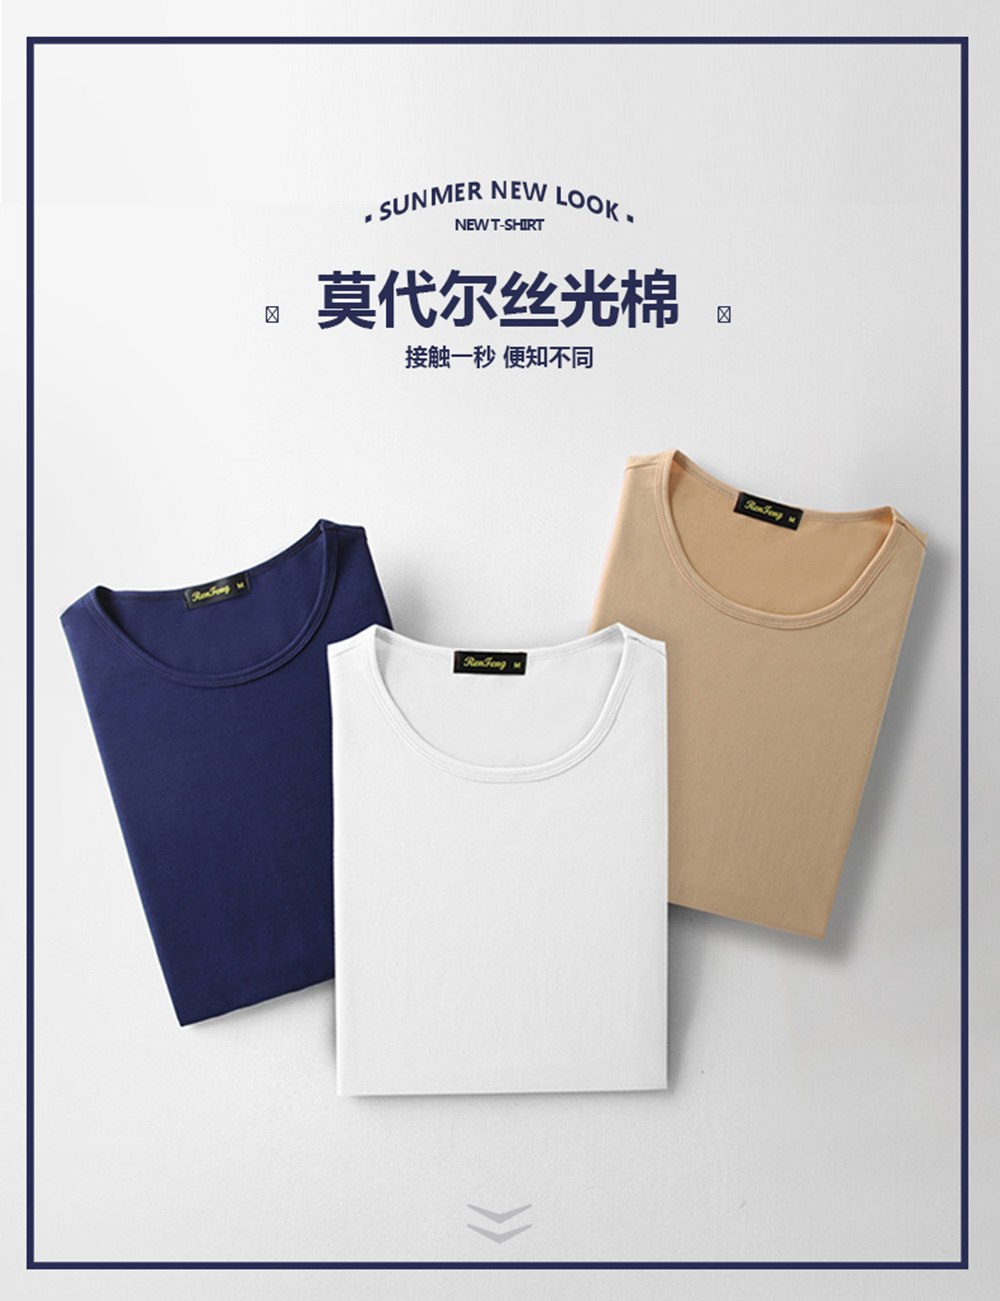 Smooth soft Modal cotton Men's Solid Color t-shirt O-Neck Short Sleeve T shirt men casual t-shirts Summer breathable tshirts top (15)